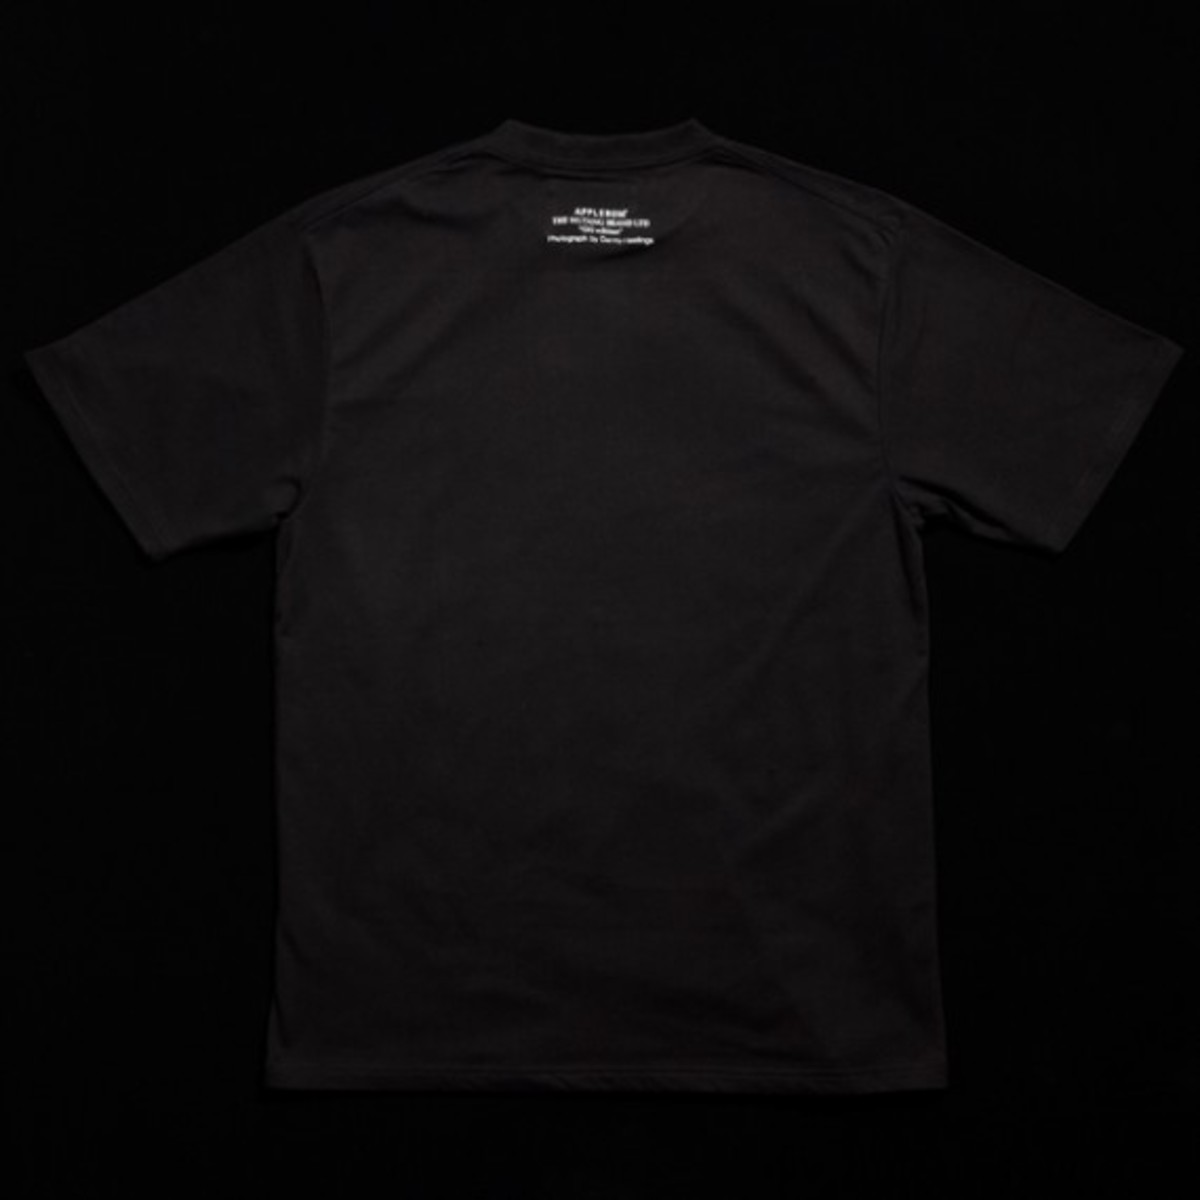 danny-hastings-photo-tshirt-black2